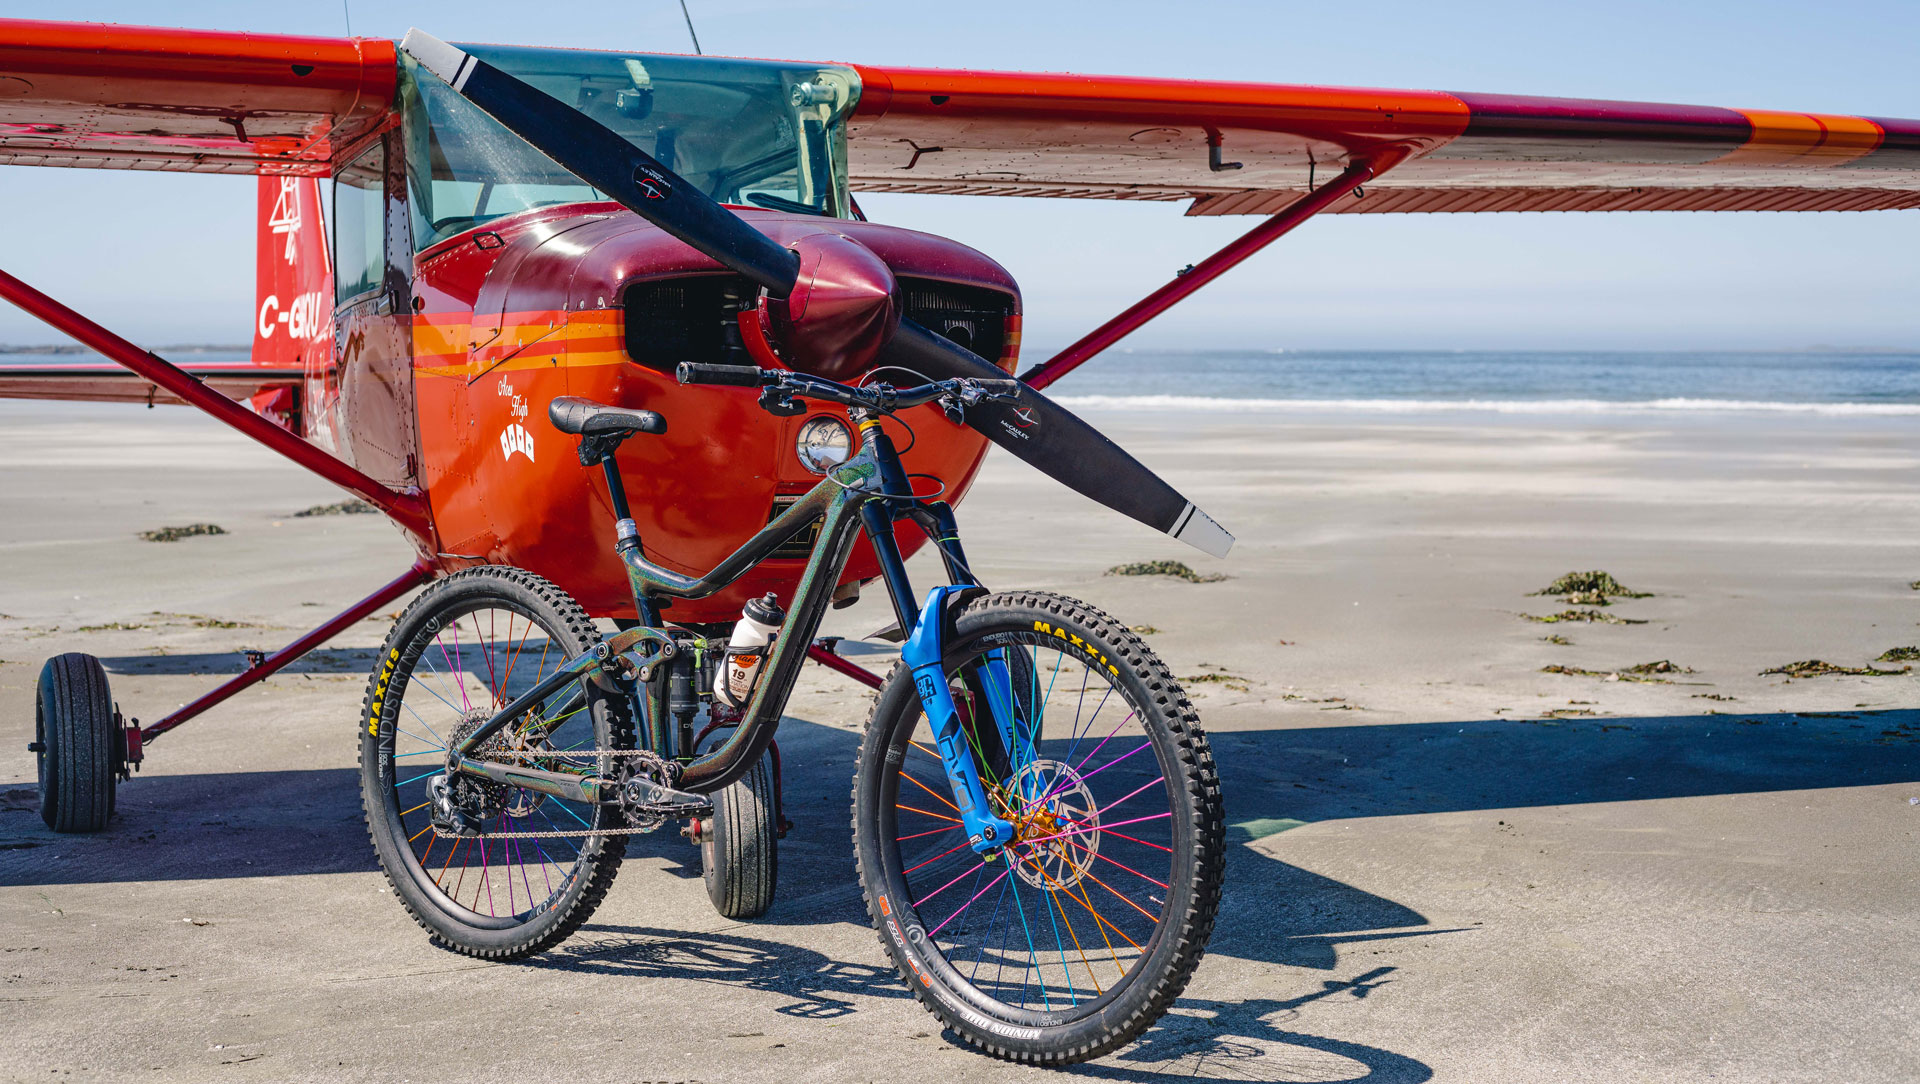 Reece Wallace's Cessna and Bike